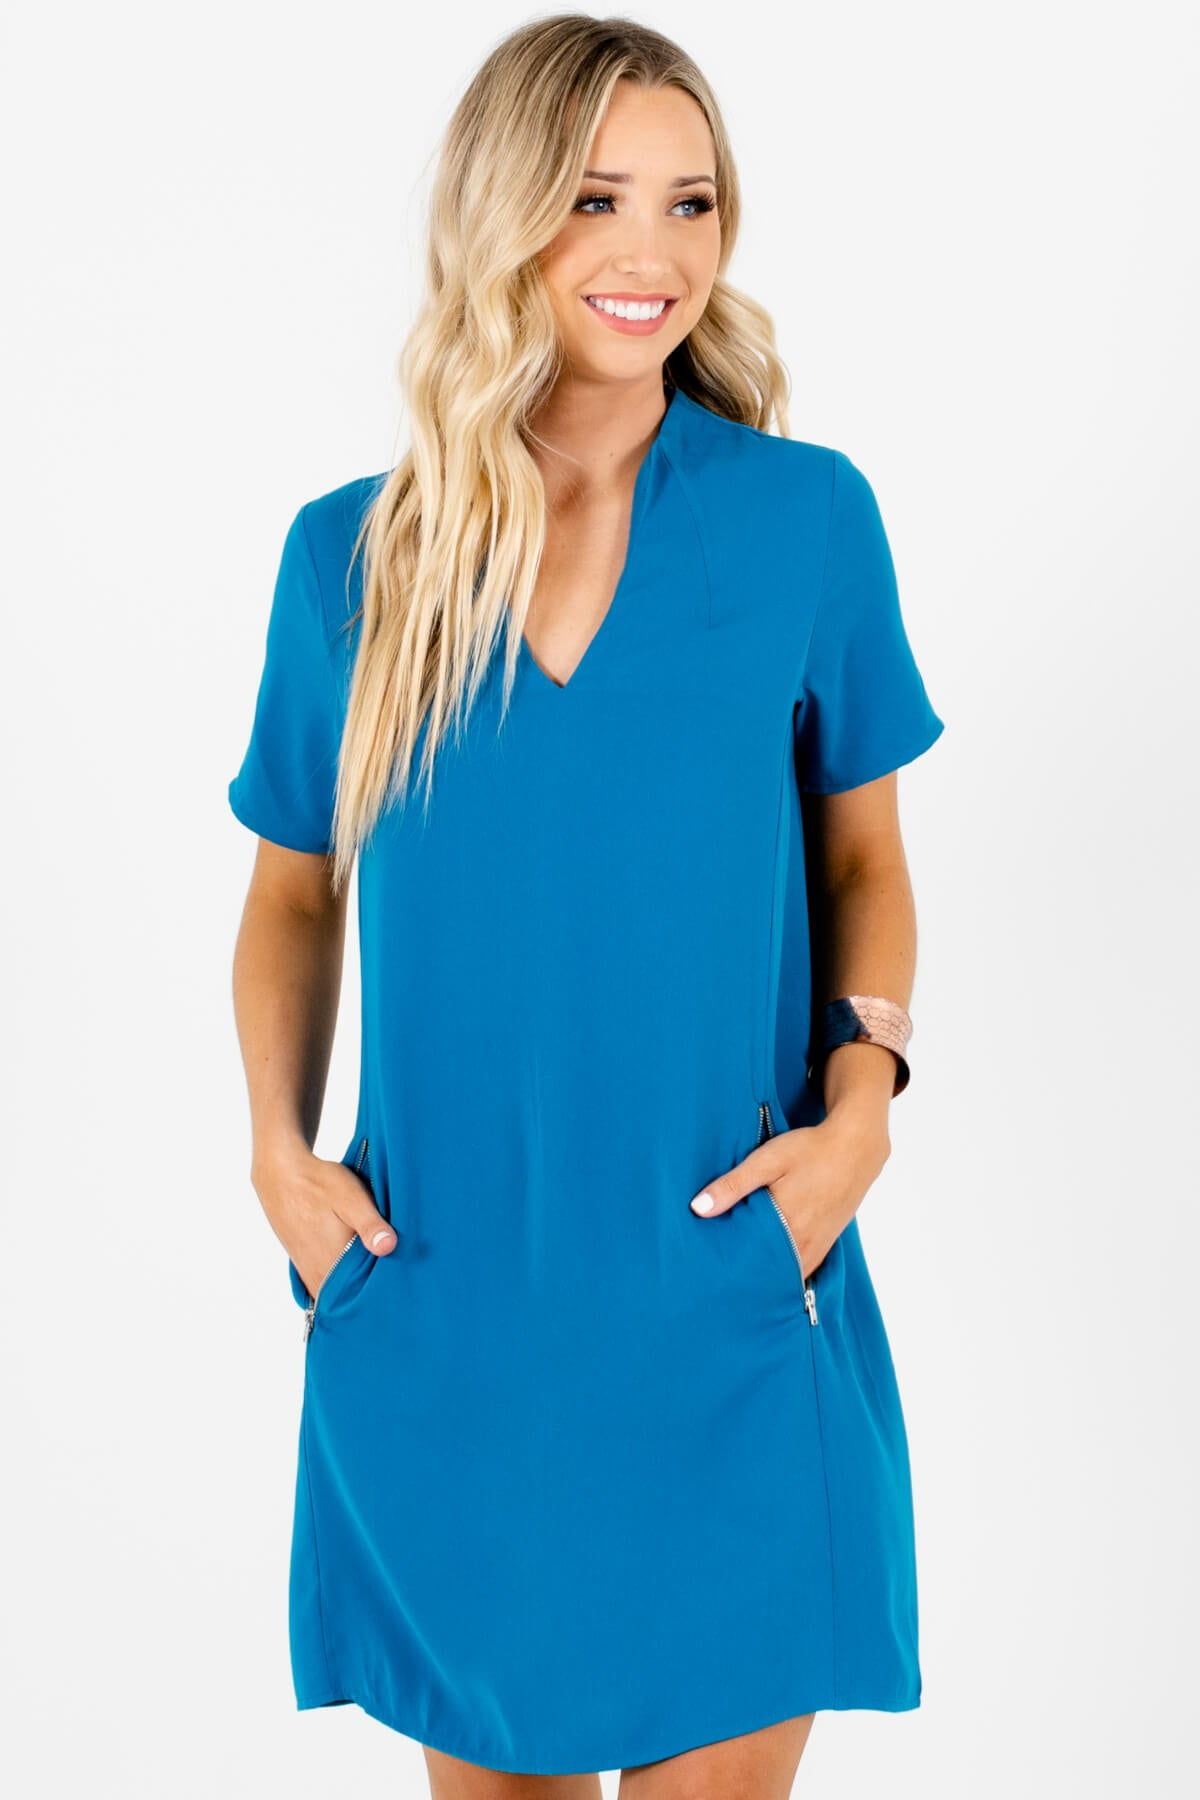 Blue Business Casual Boutique Mini Dresses with Zipper Accents